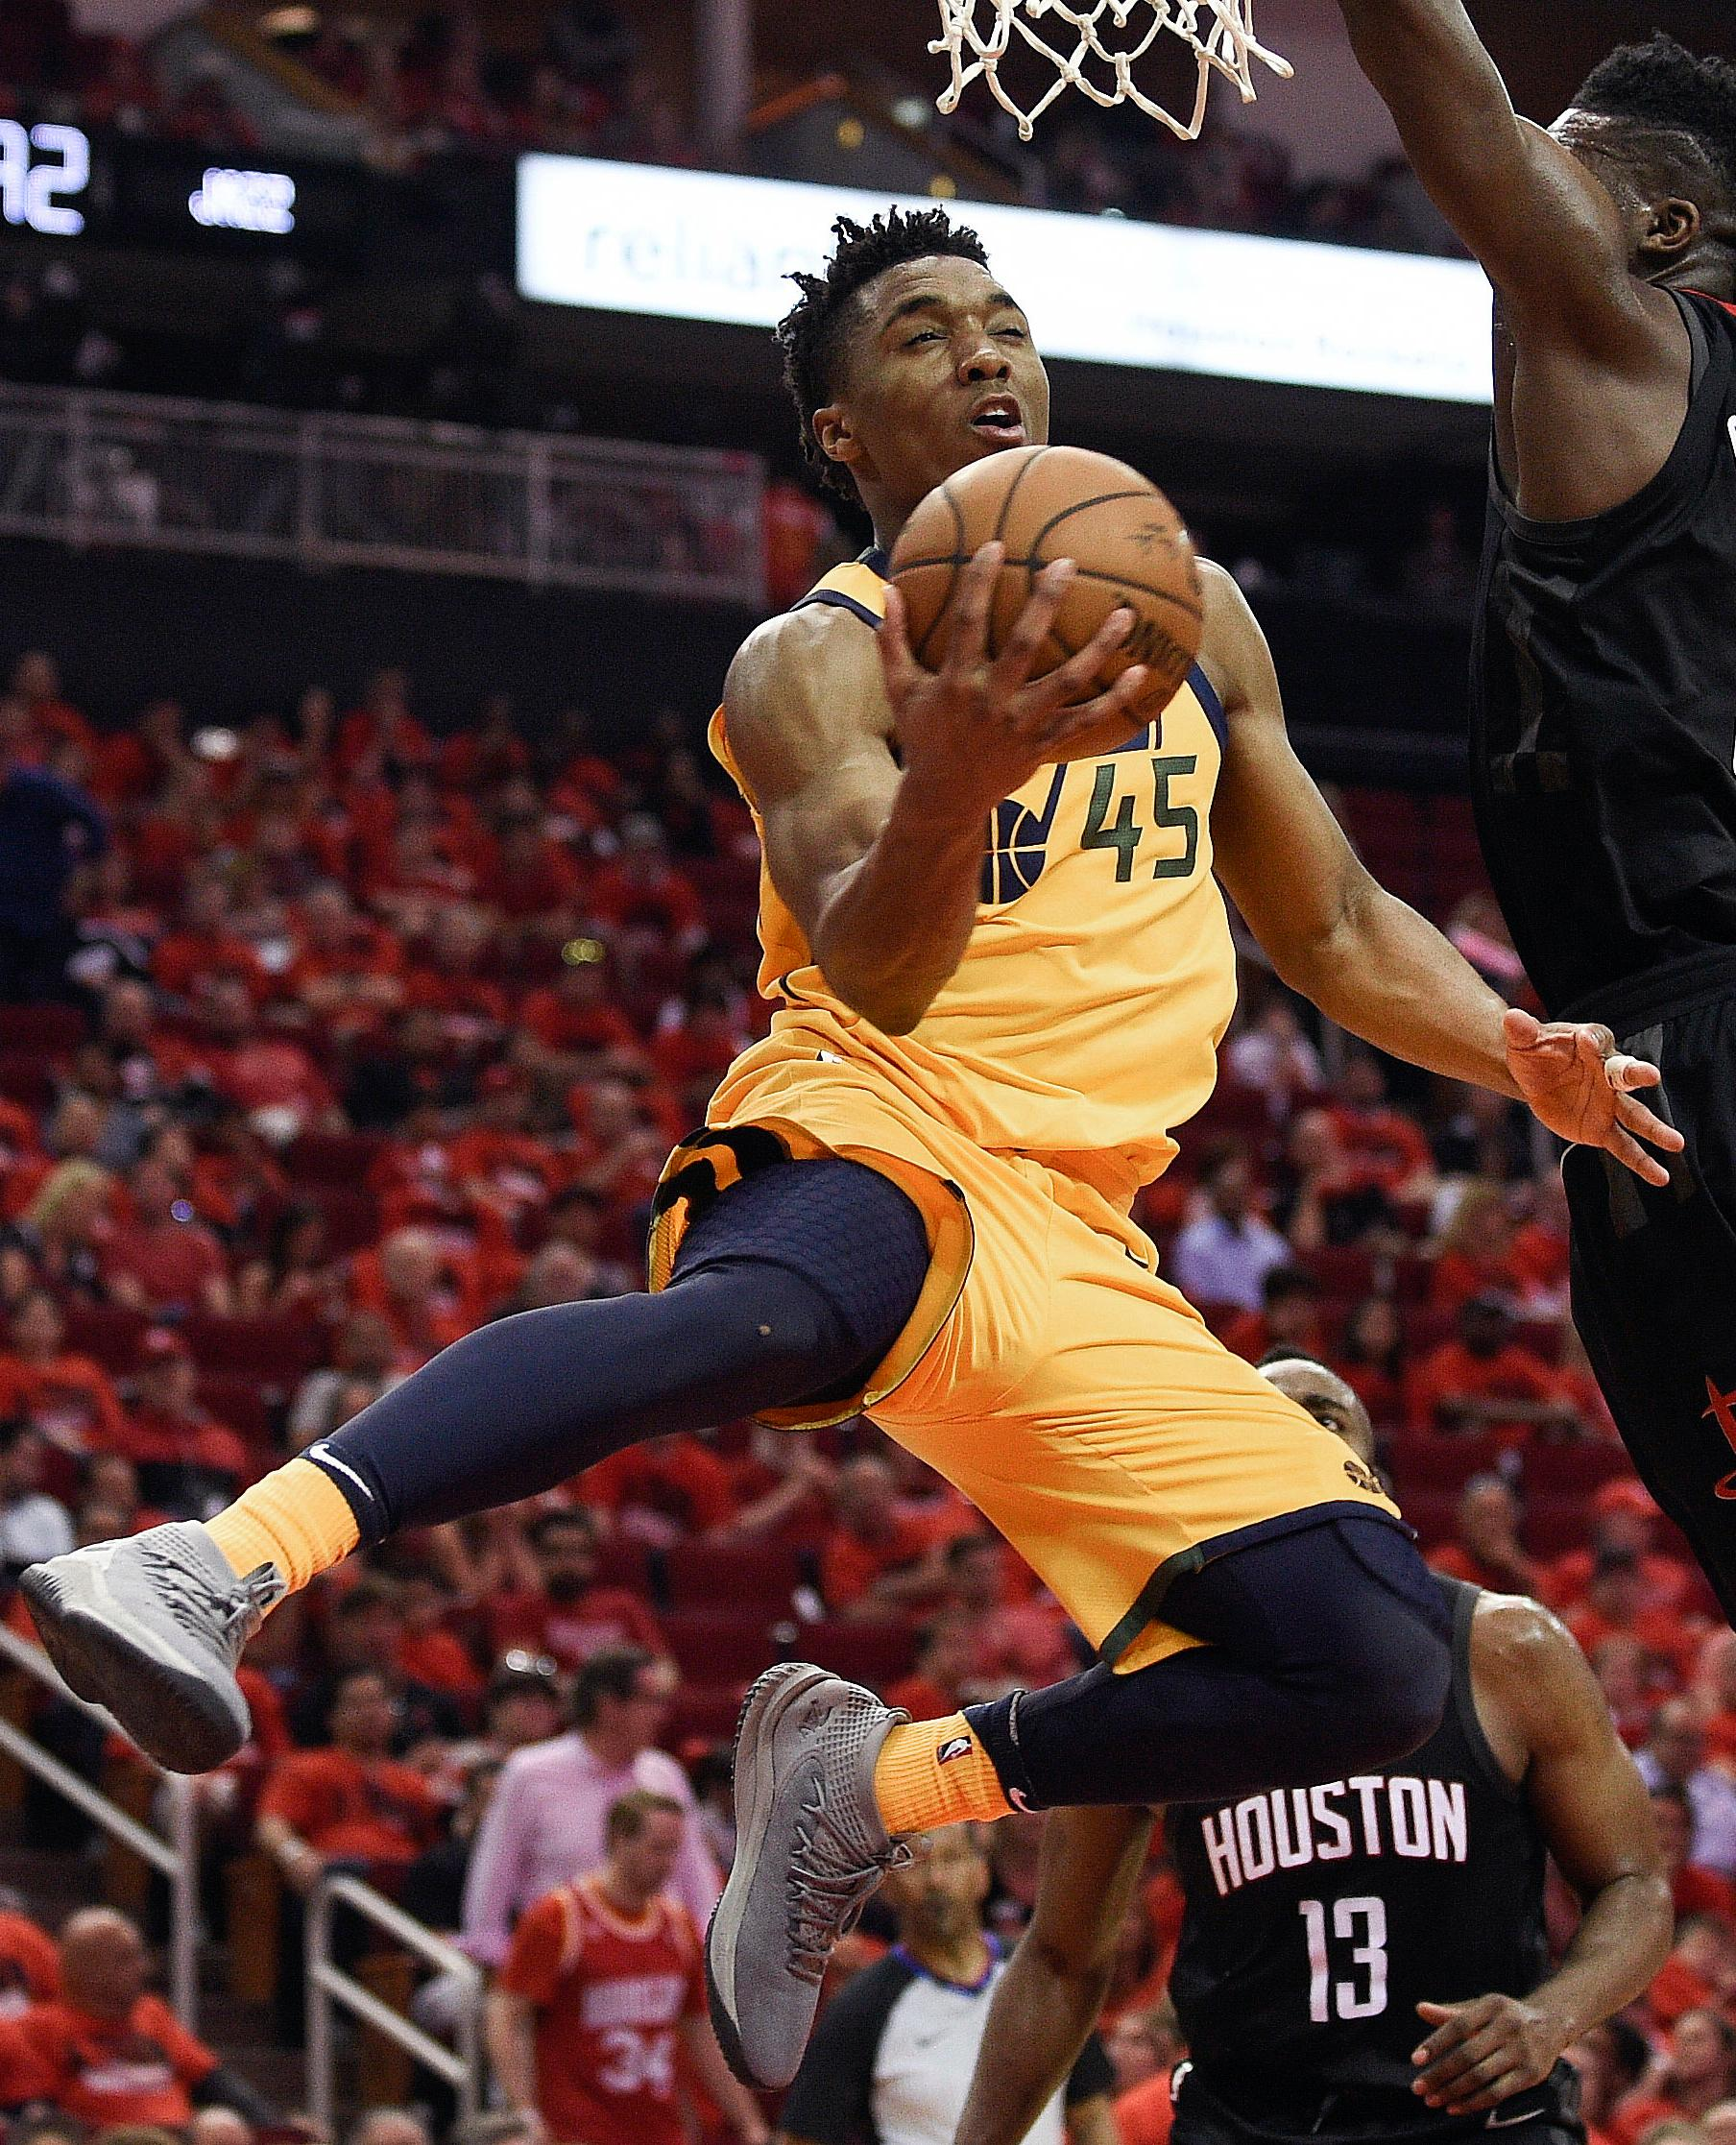 Utah Jazz guard Donovan Mitchell (45) drives to the basket as Houston Rockets center Clint Capela, right, defends during the second half in Game 1 of an NBA basketball second-round playoff series Sunday, April 29, 2018, in Houston. (AP Photo/Eric Christian Smith)